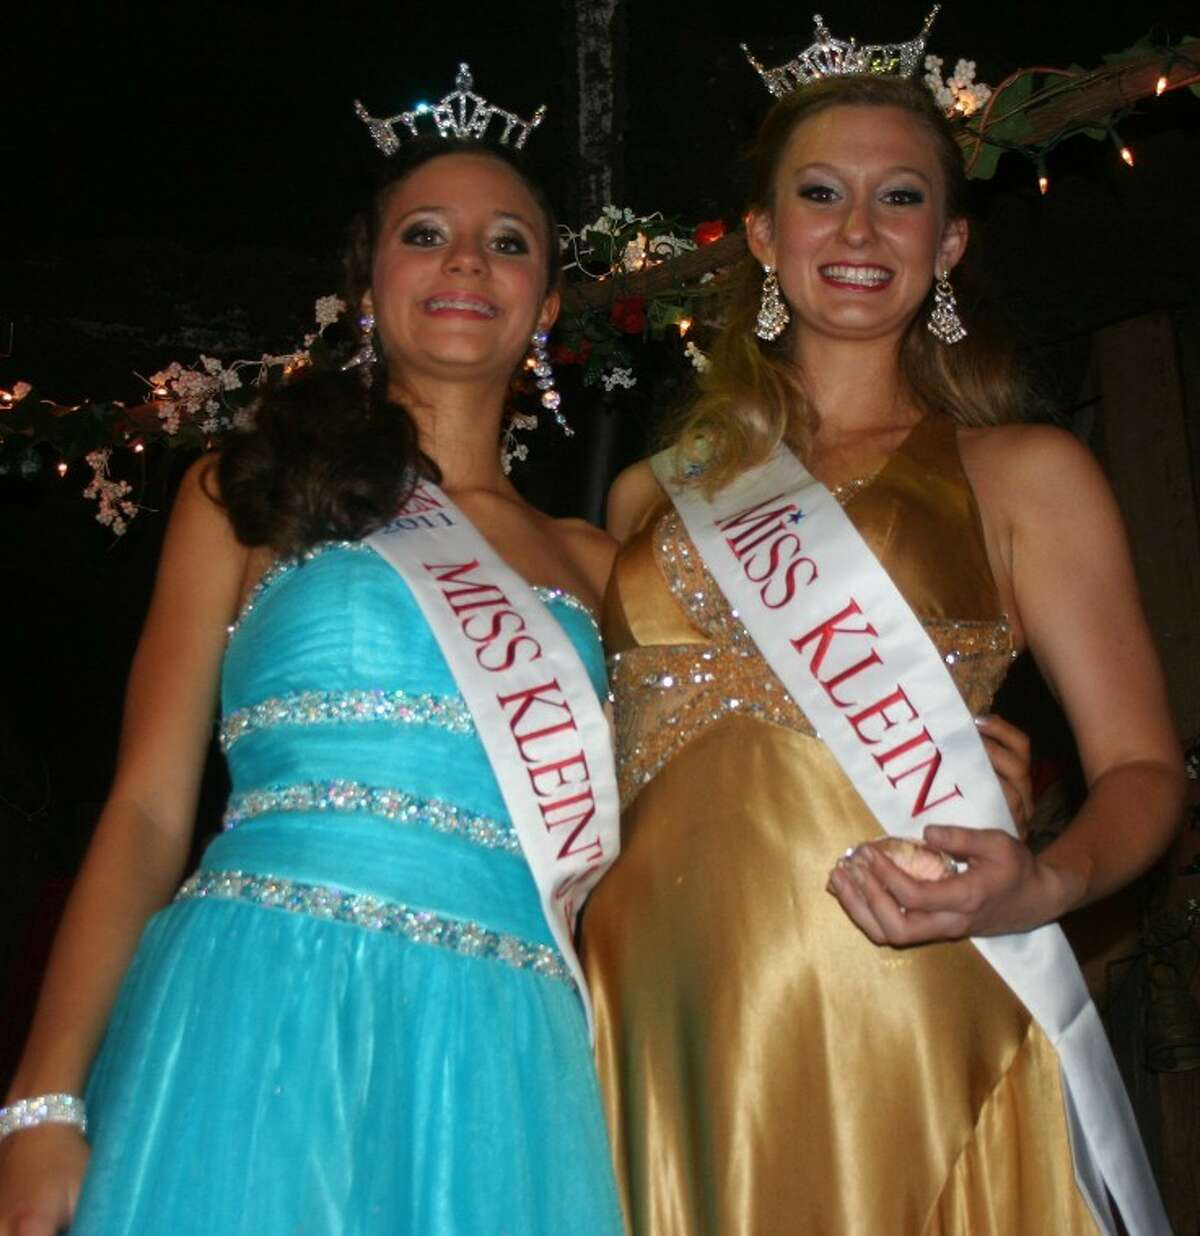 (L-R) Taylor Hudson, who was crowned Miss Klein Outstanding Teen 2011, stands alongside Miss Klein April Zinober.